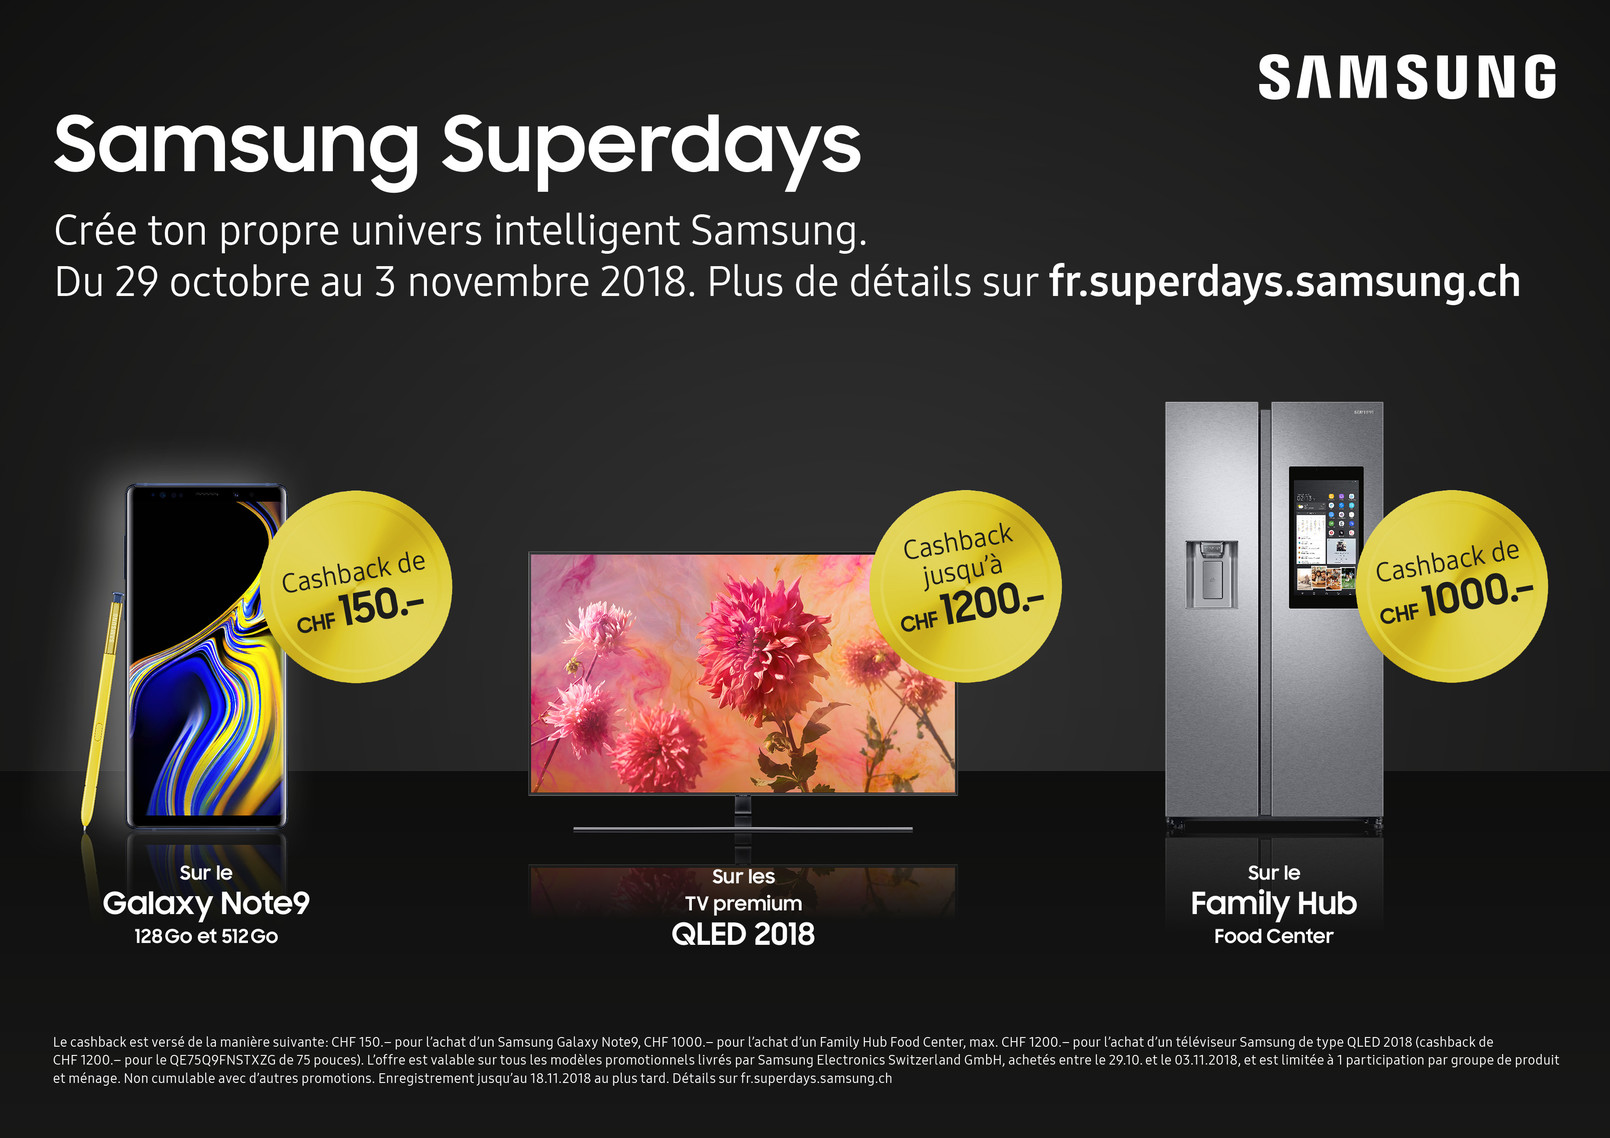 Samsung Superdays